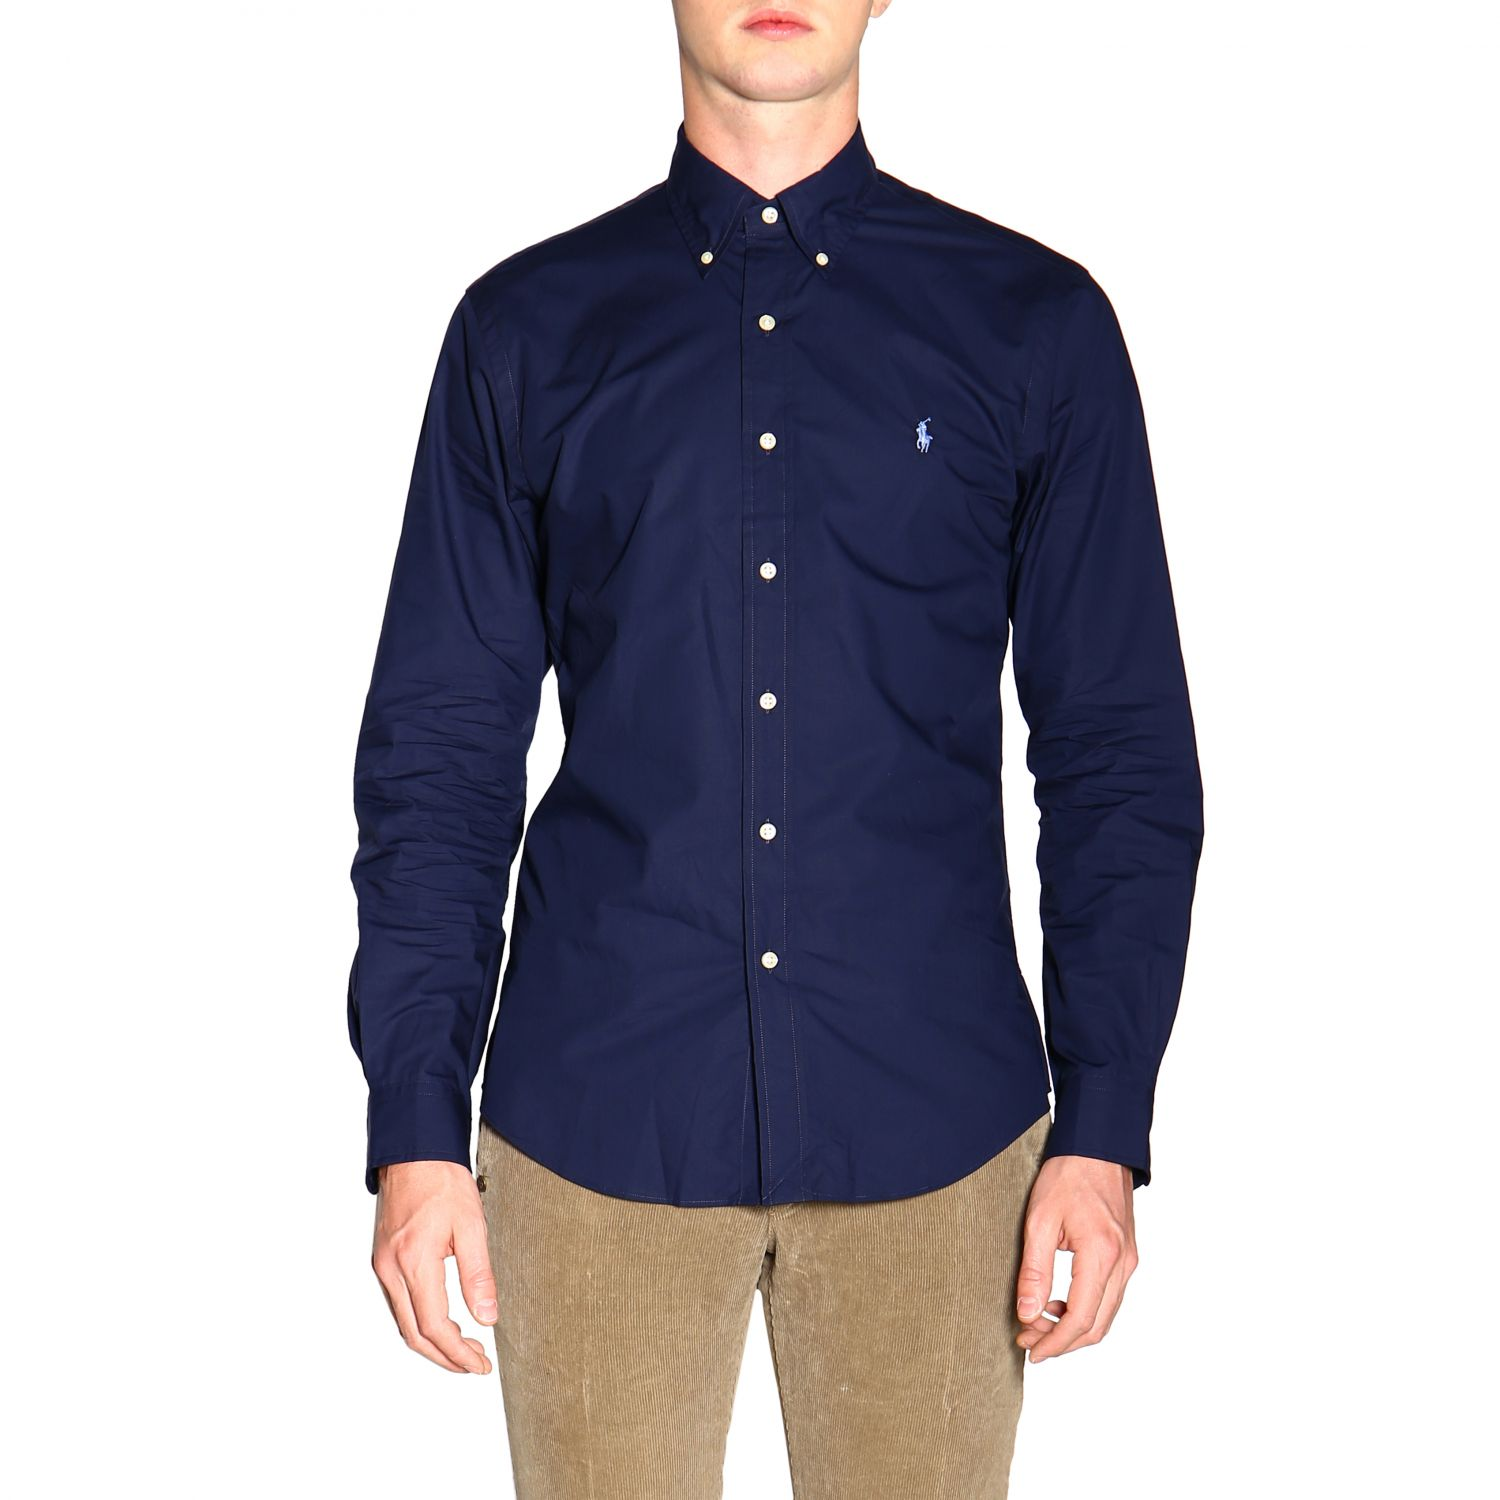 Camicia custom fit natural stretch con collo button down e logo Polo Ralph Lauren blue 1